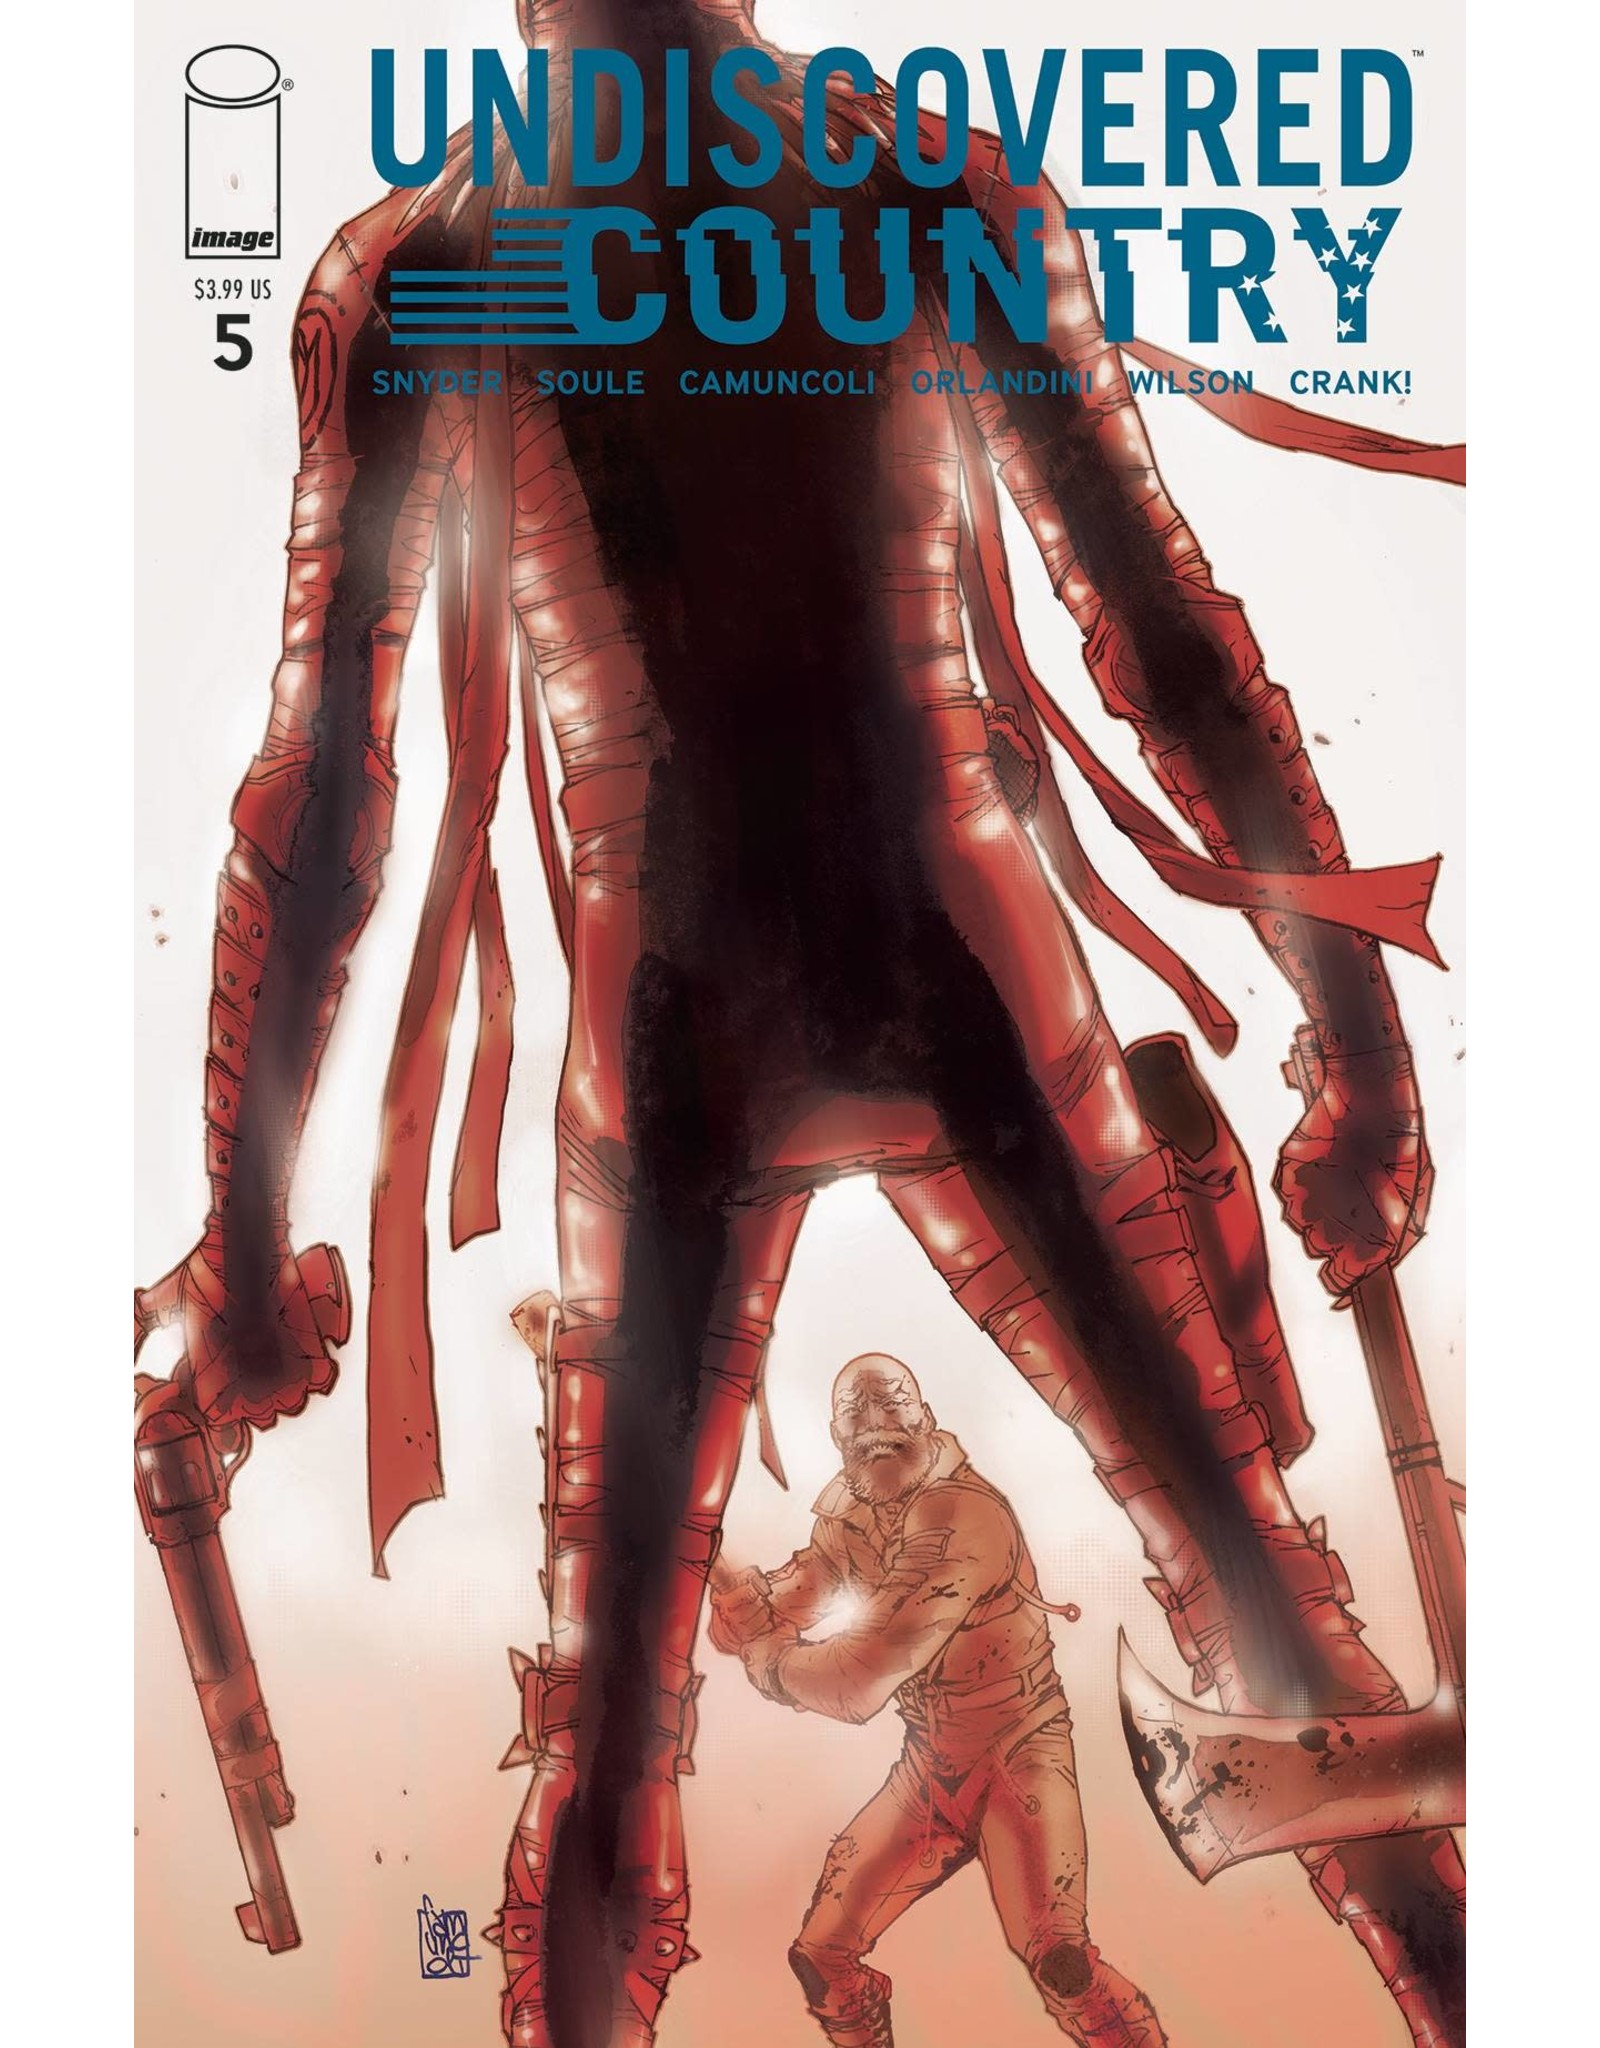 Image Comics UNDISCOVERED COUNTRY #5 CVR A CAMUNCOLI (MR)